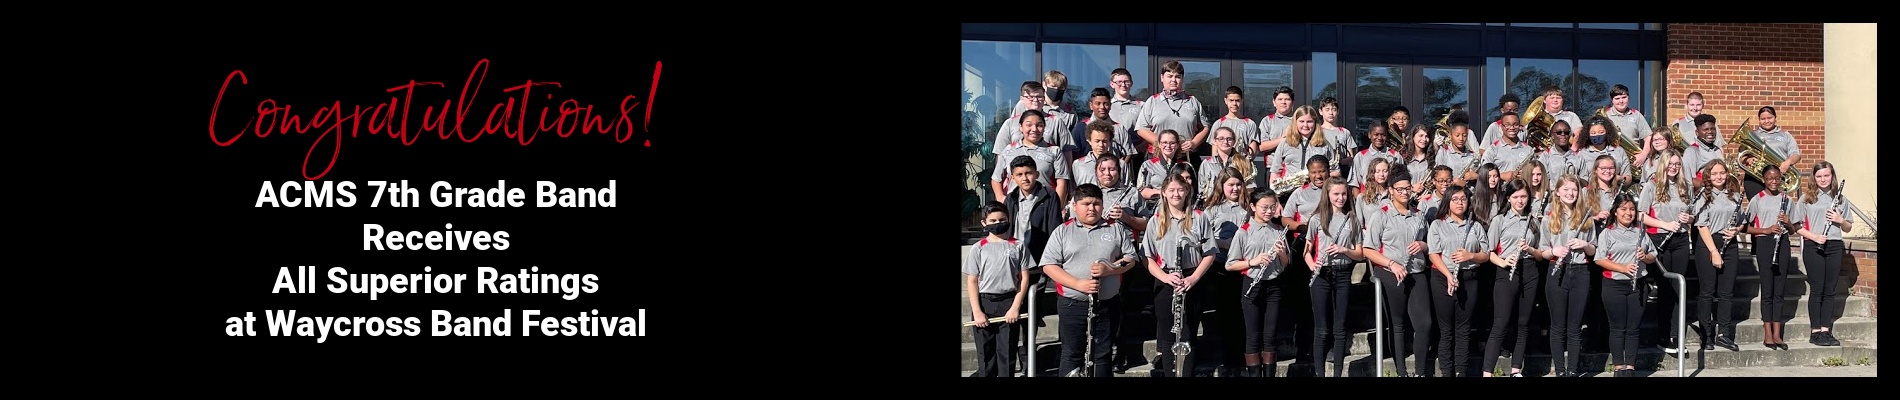 ACMS 7th Grade Band Receives All Superior Ratings at Waycross Band Festival